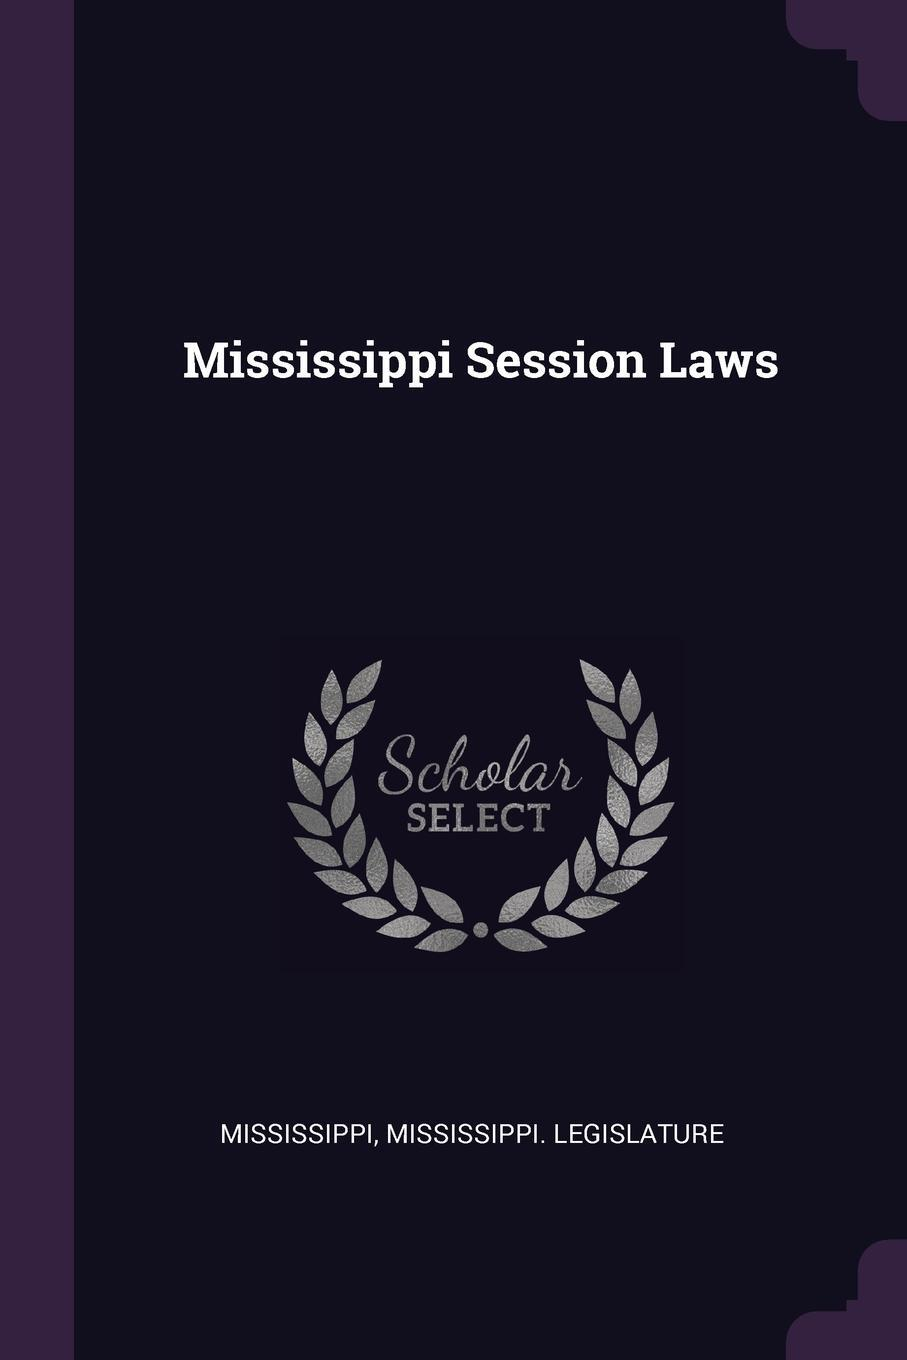 Mississippi pornography law